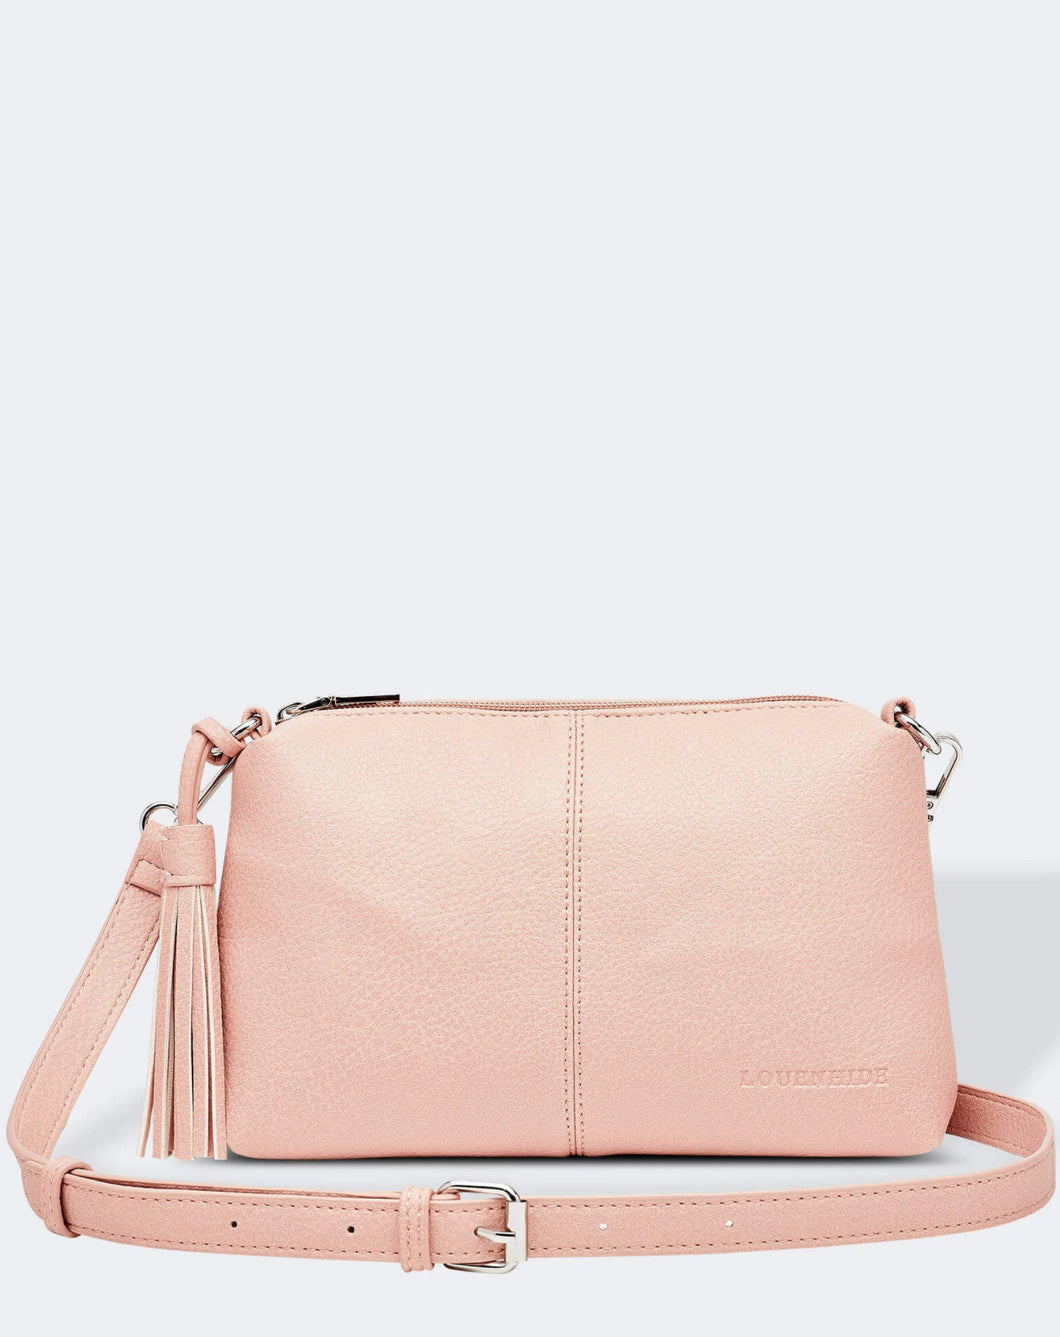 LOUENHIDE BABY DAISY CROSSBODY BAG- PALE PINK